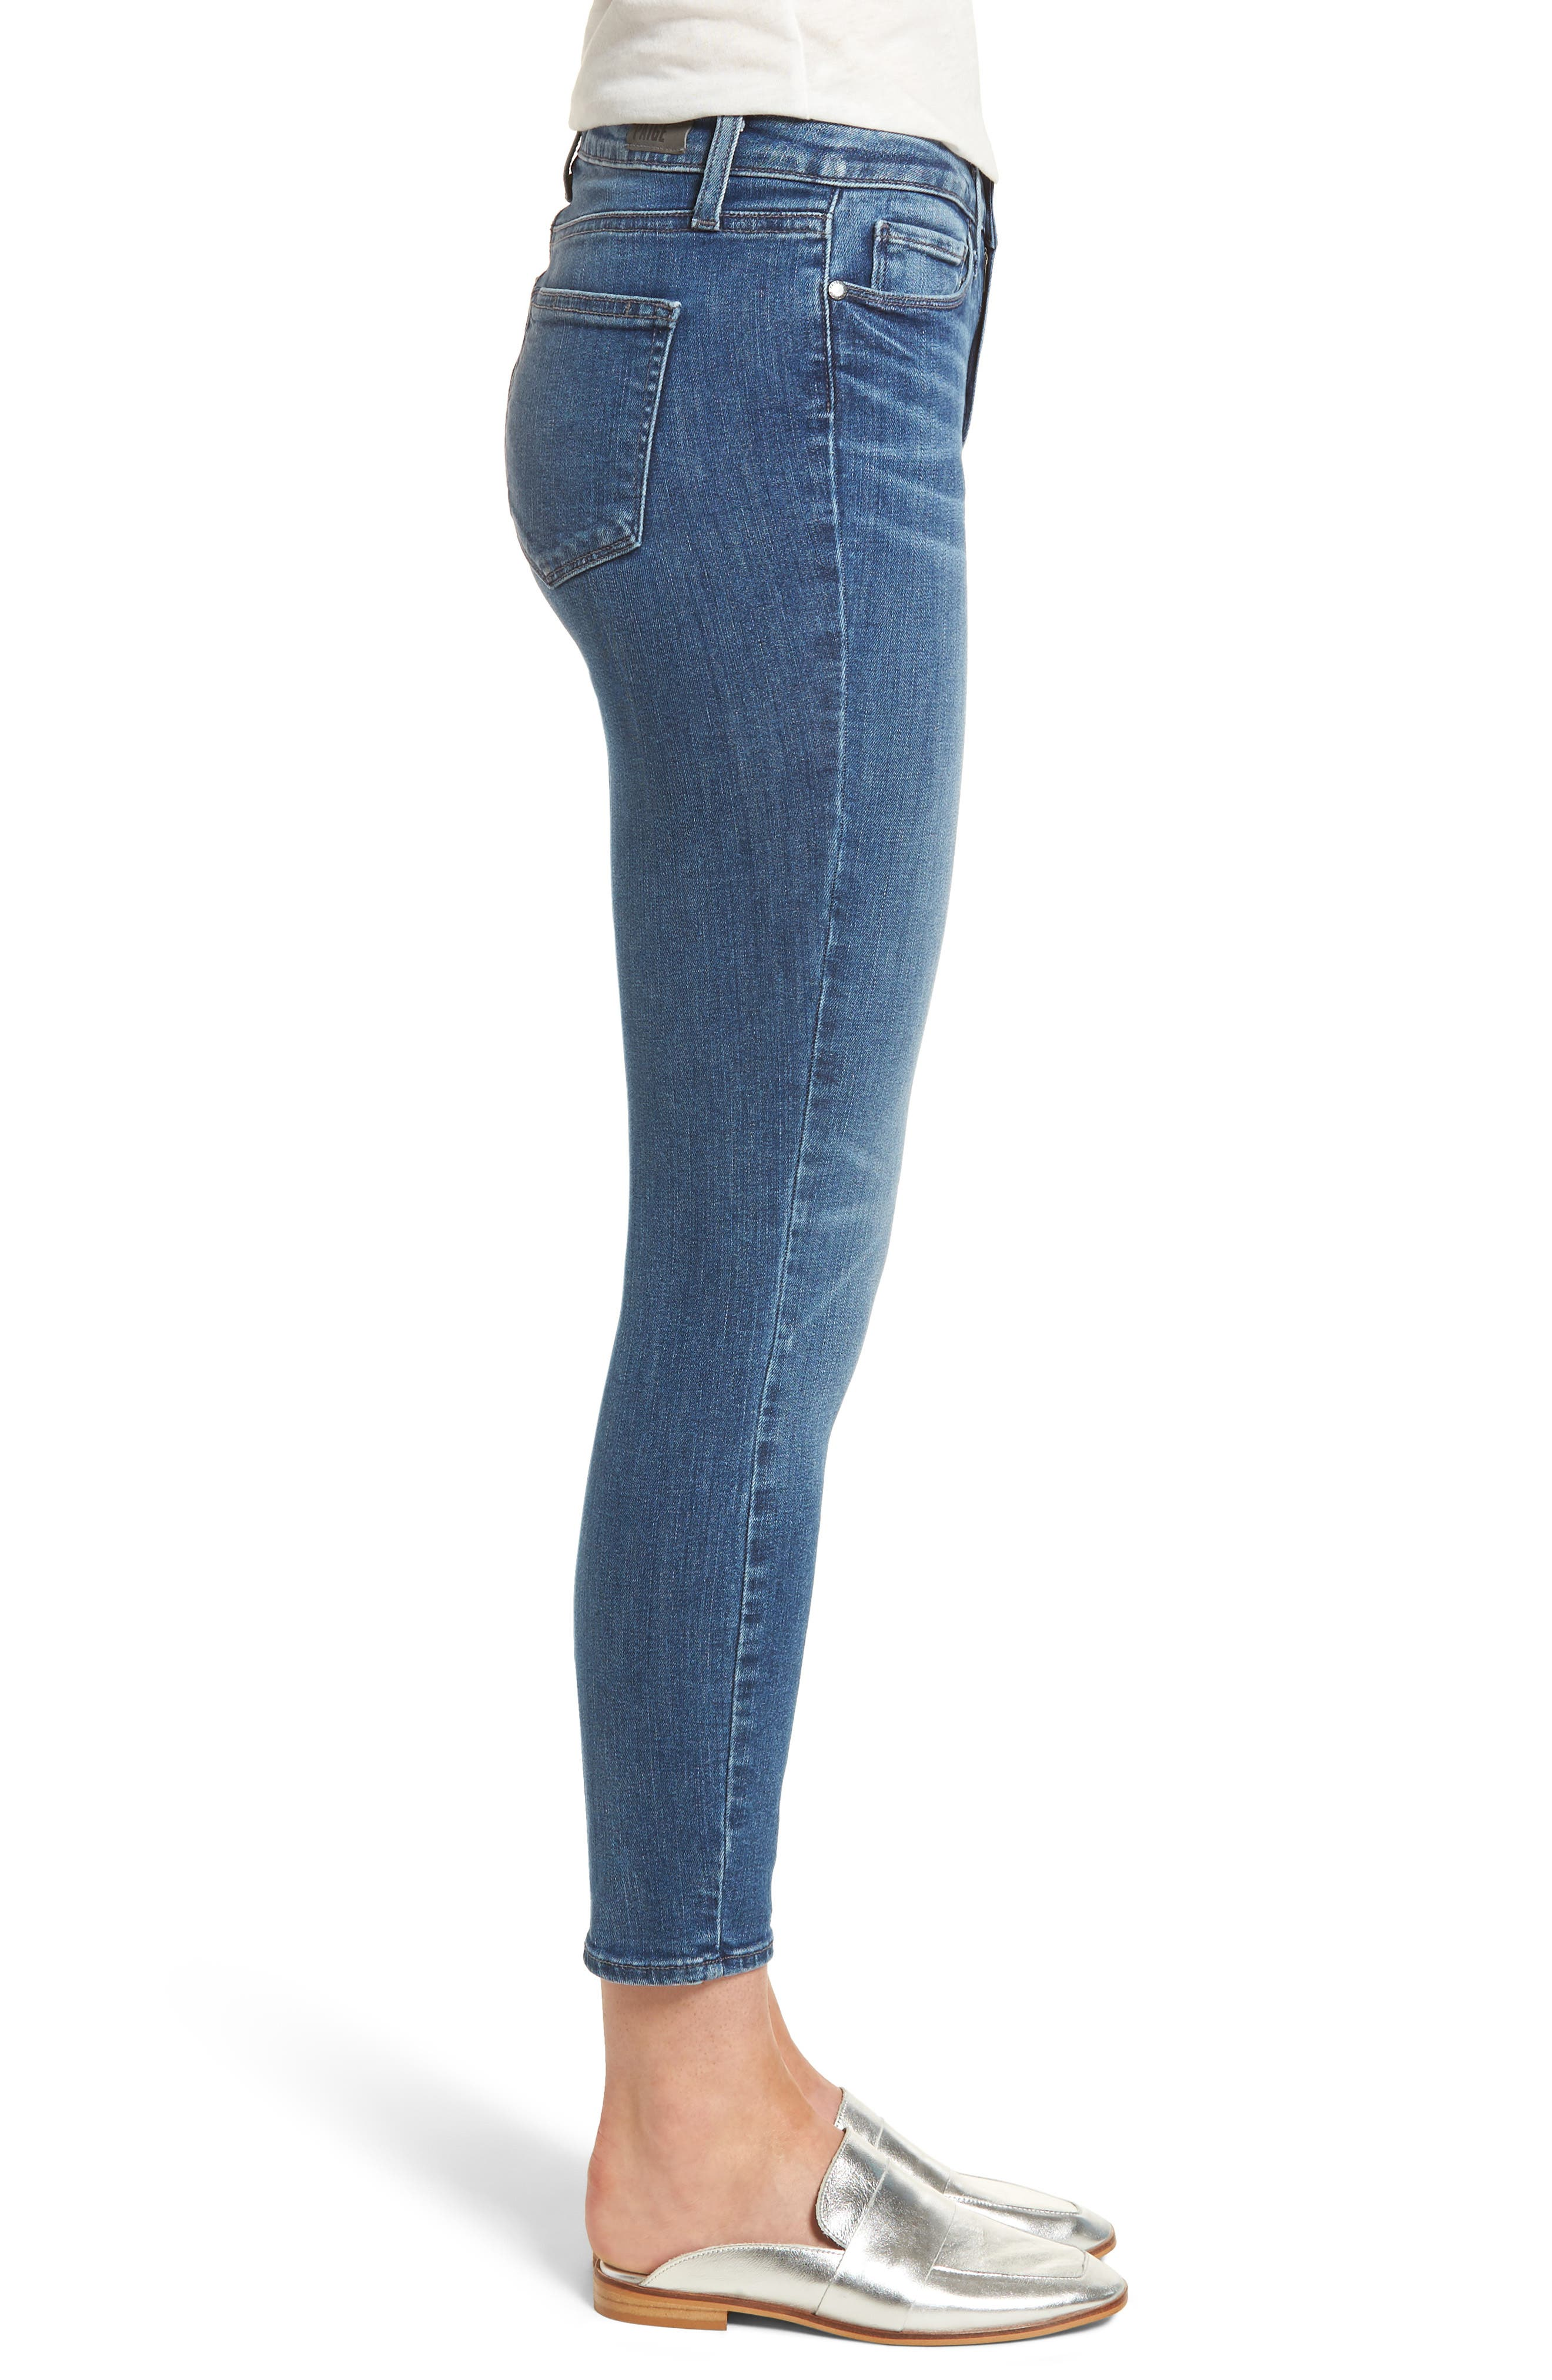 Hoxton High Waist Ankle Skinny Jeans,                             Alternate thumbnail 3, color,                             Bloomfield